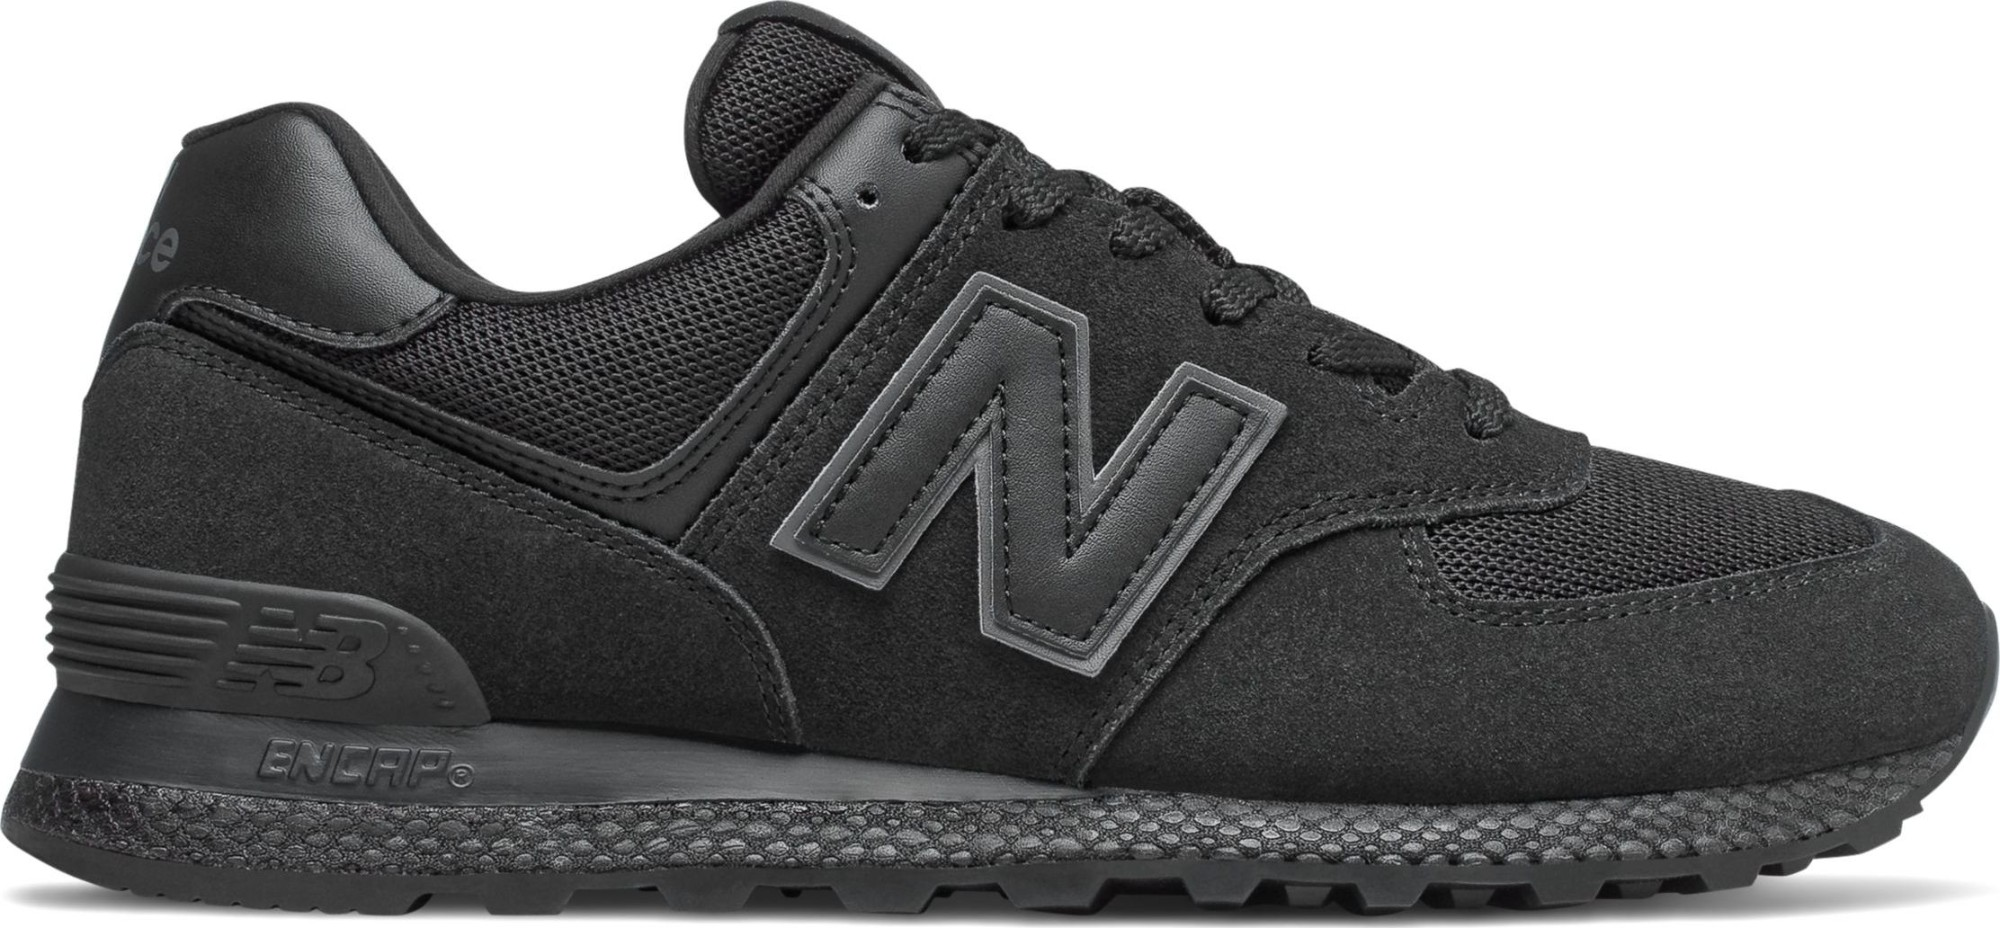 New Balance MT574 Black 43